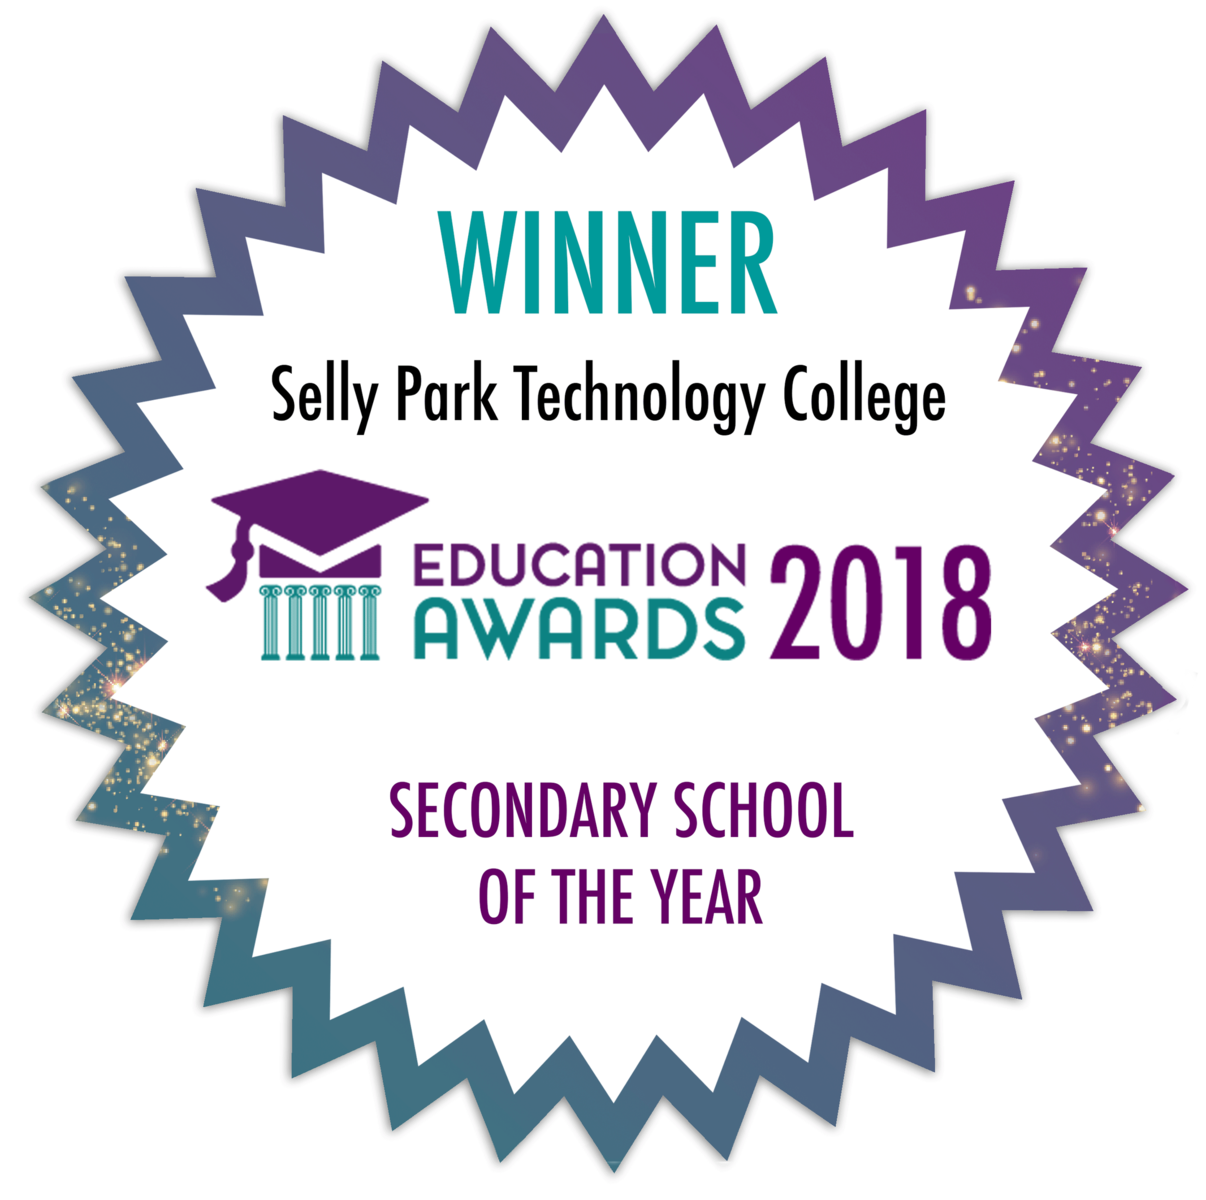 Secondary School Of The Year